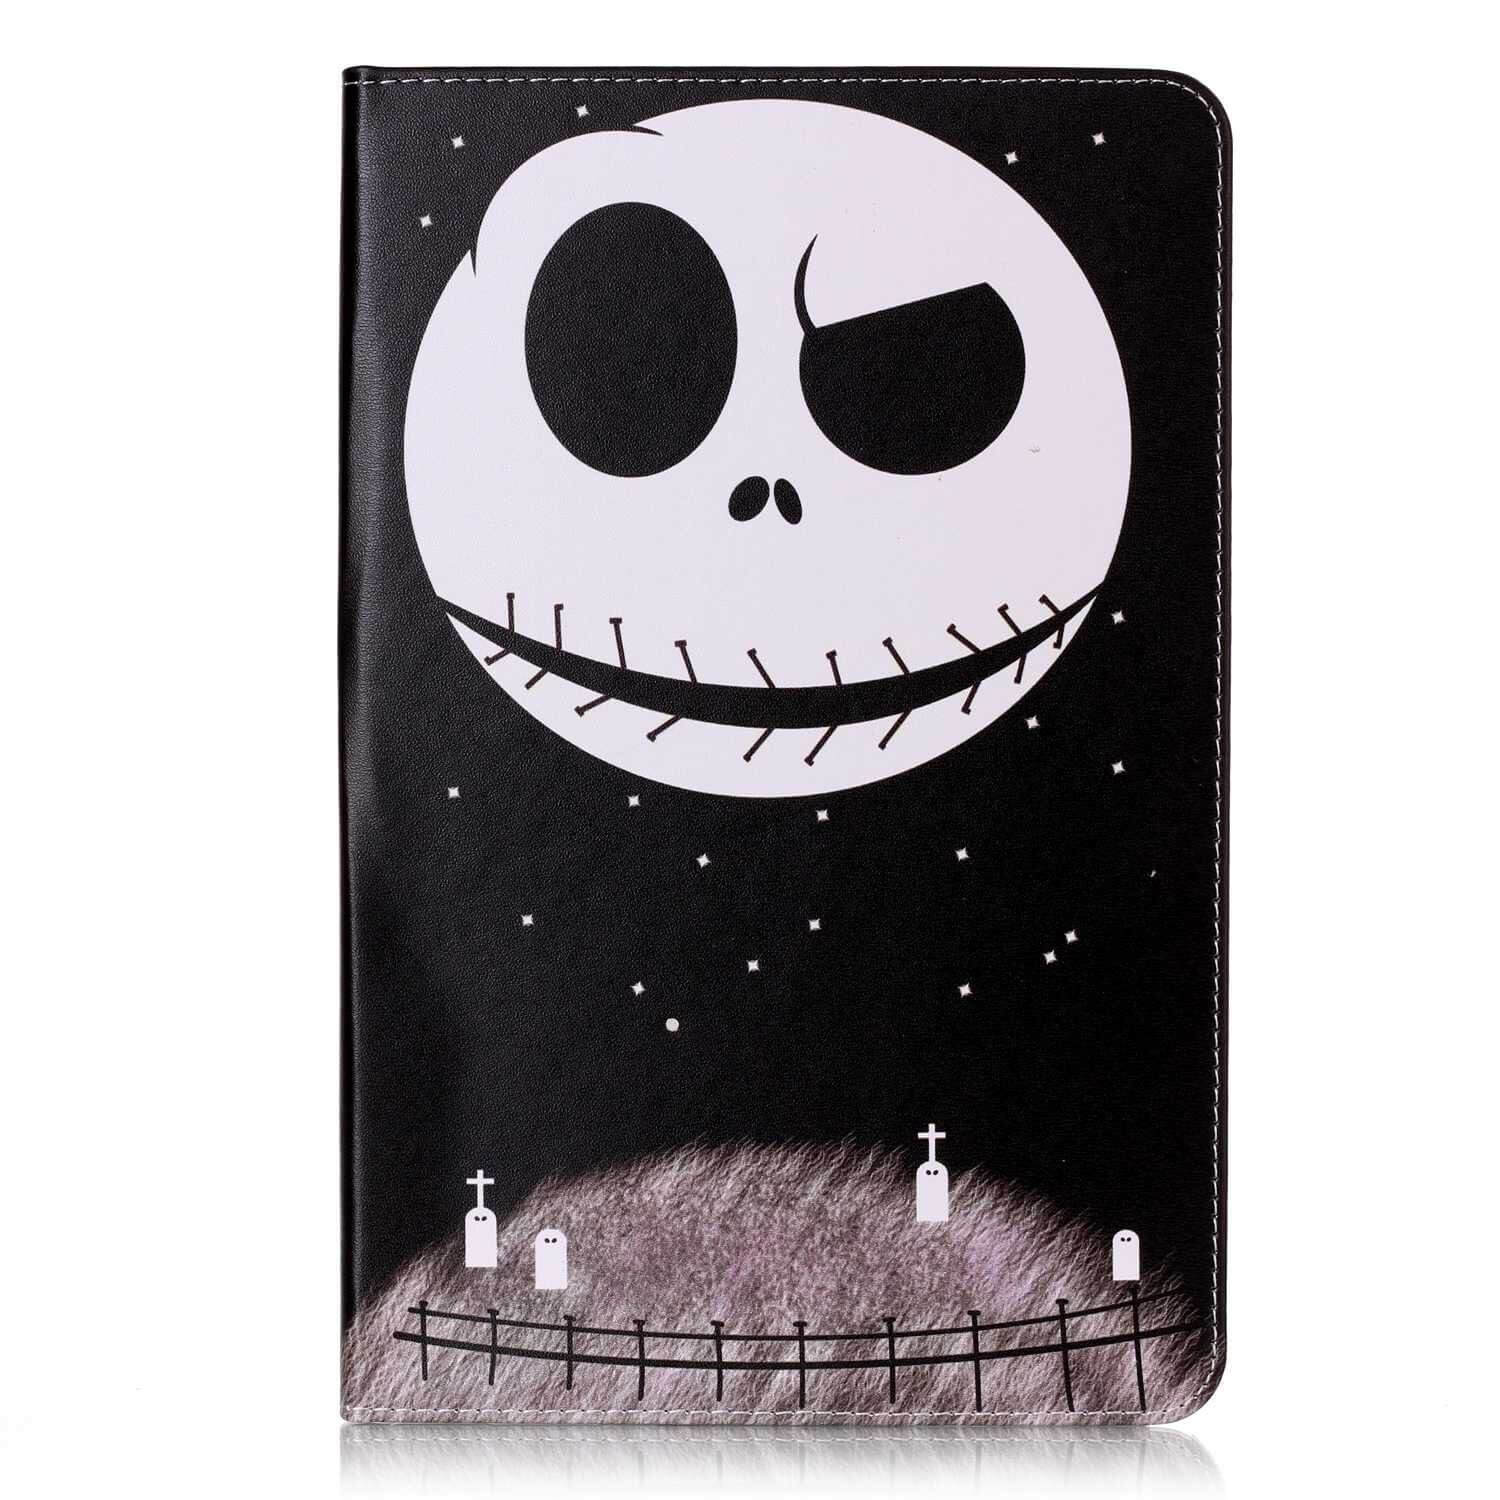 galaxy tab a 10 1 s pen 2016 case with a wide selection of images and 2 stand 13: